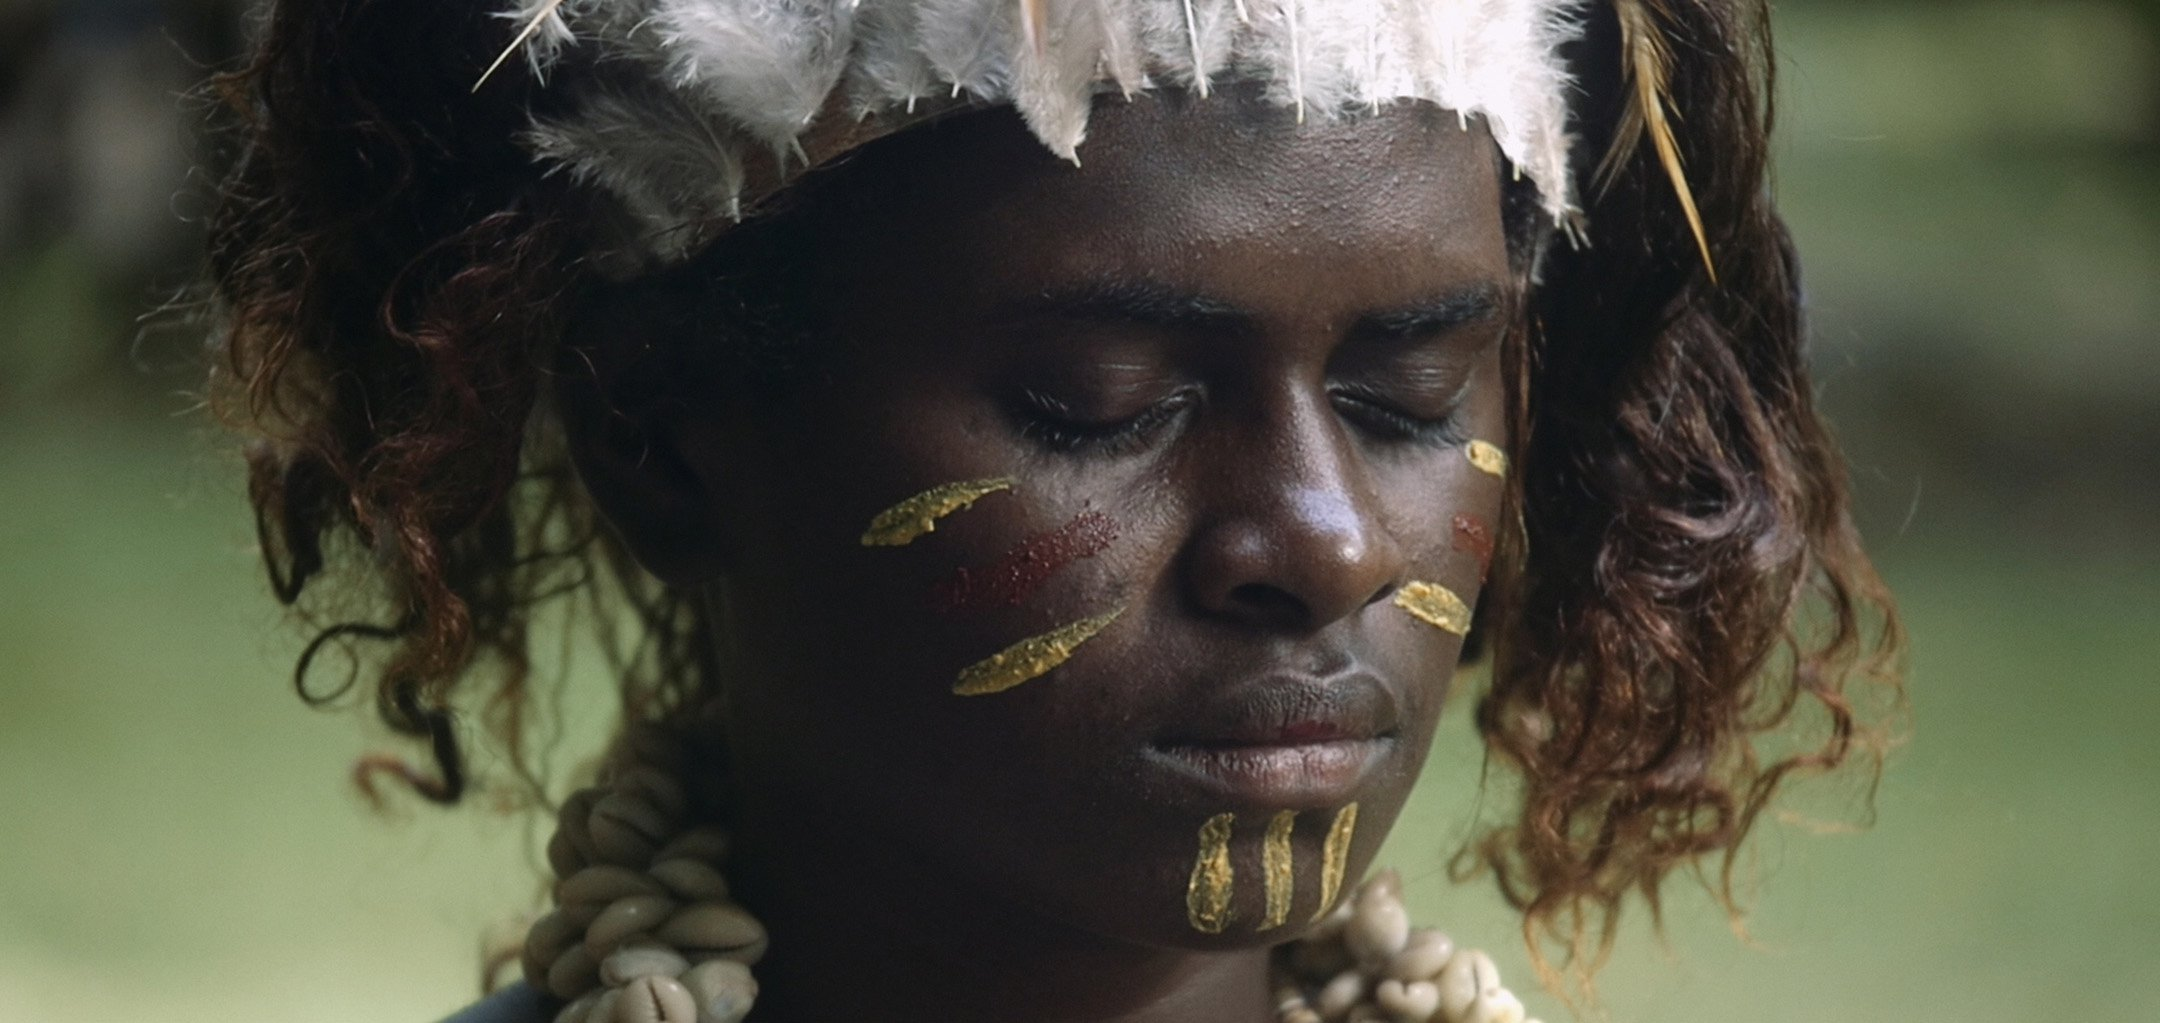 Still from Ophir - closeup of Bougainville woman with ritual face paint, eyes closed